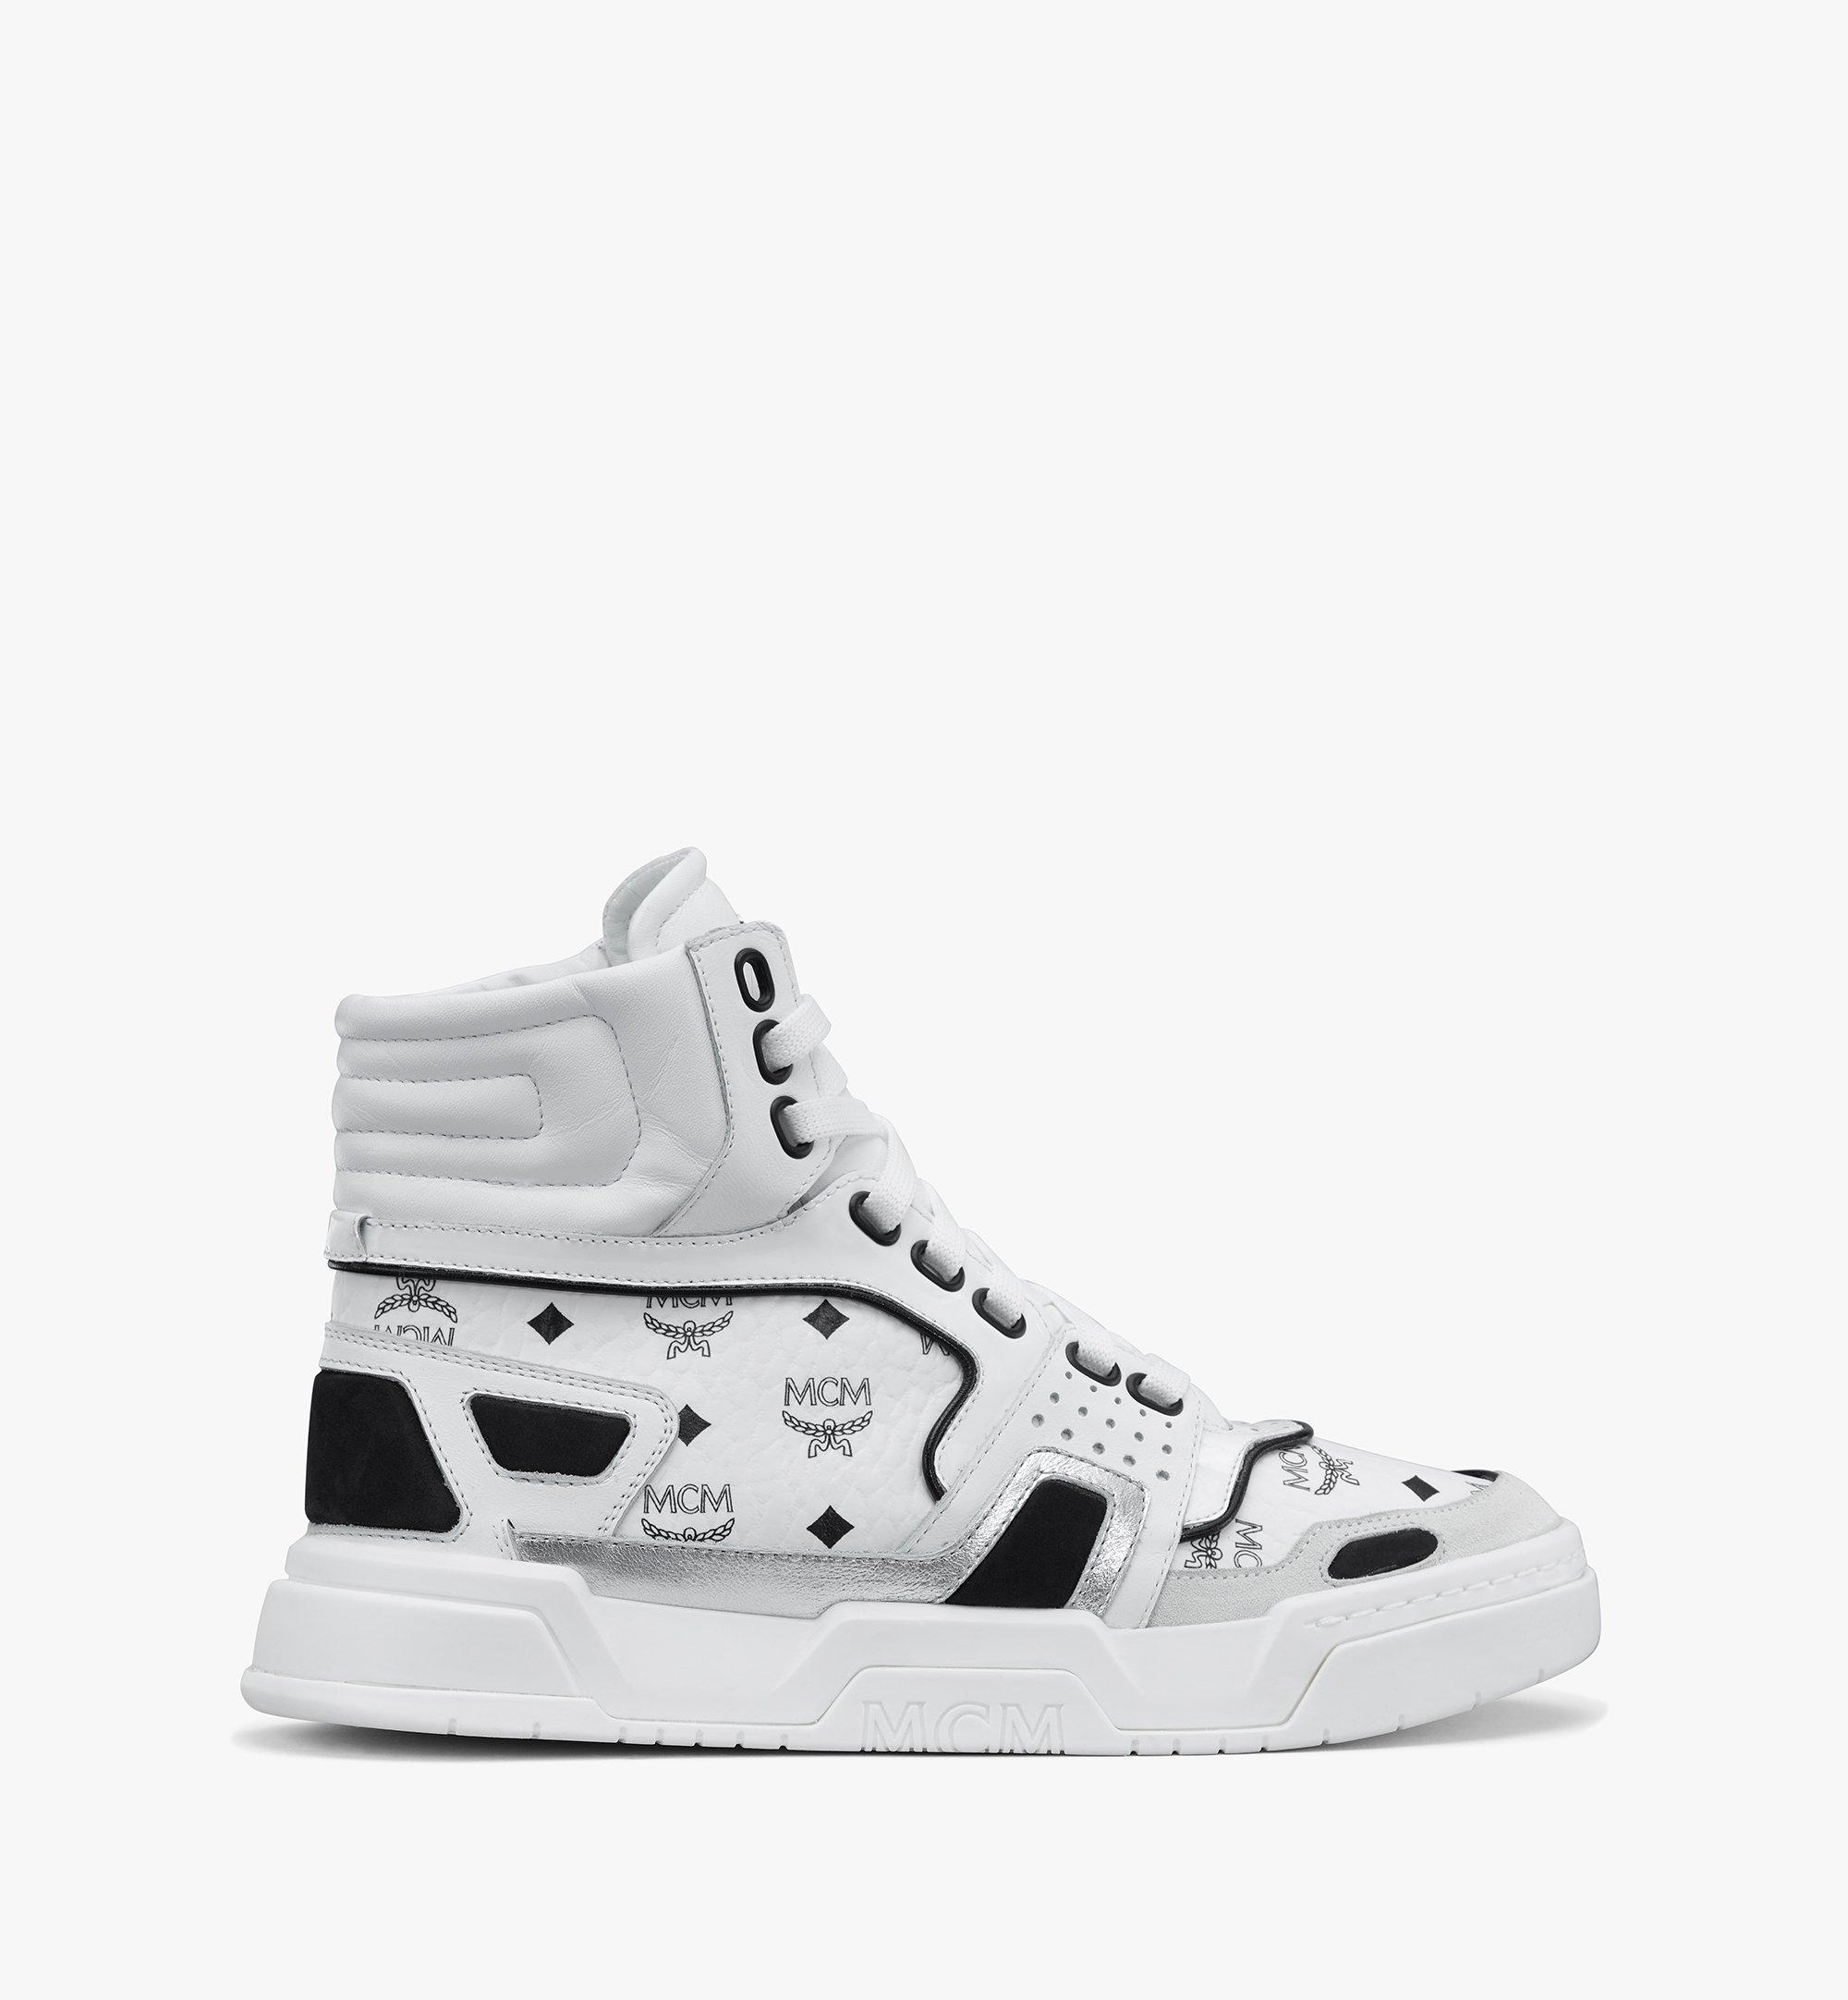 36 Women's Skyward High Top Sneakers in Visetos White | MCM® FR